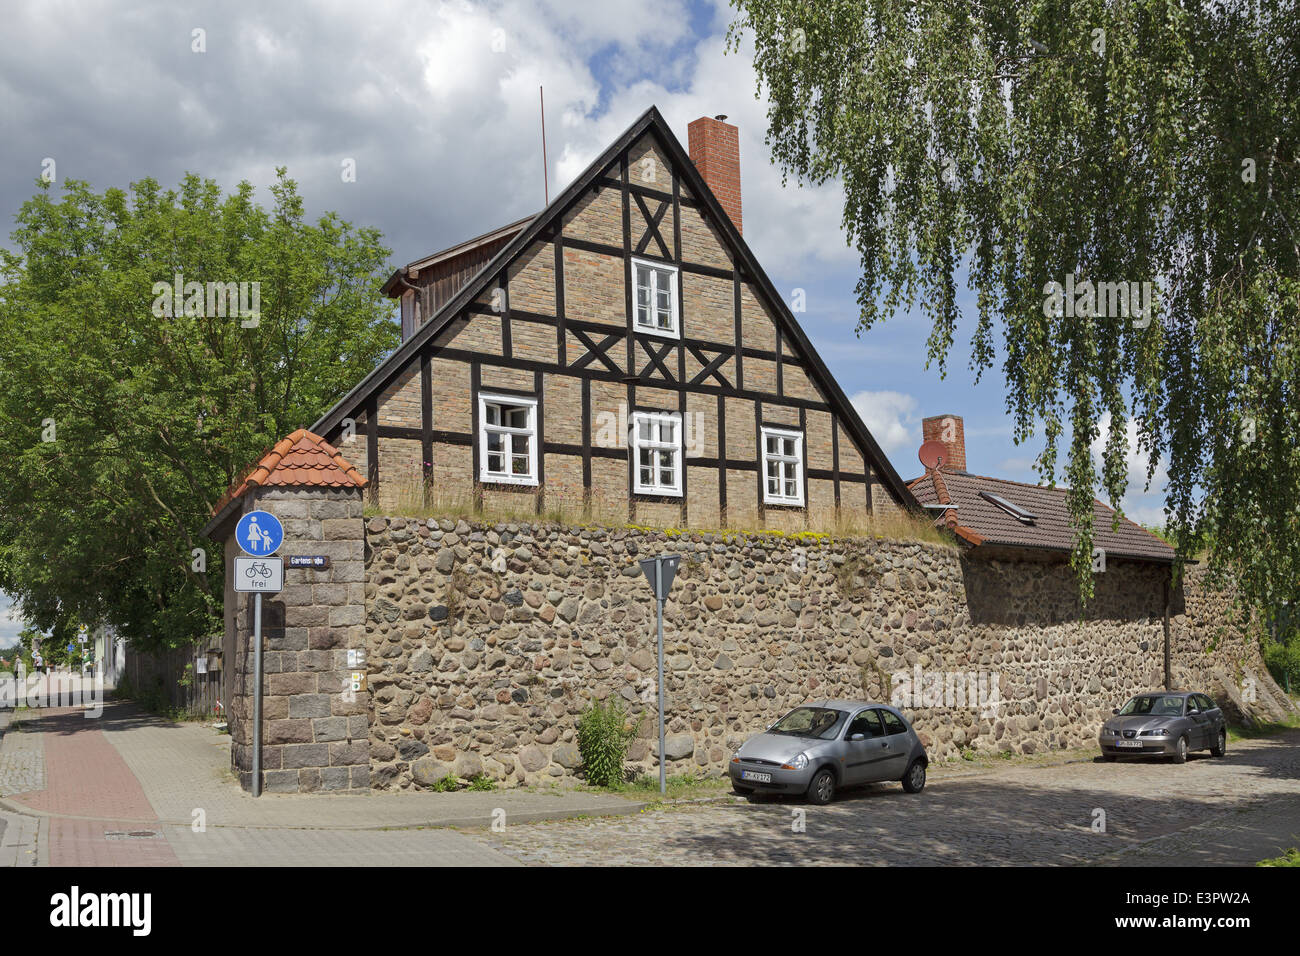 Templin Gate and part of town wall, Lychen, Uckermark, Brandenburg, Germany - Stock Image